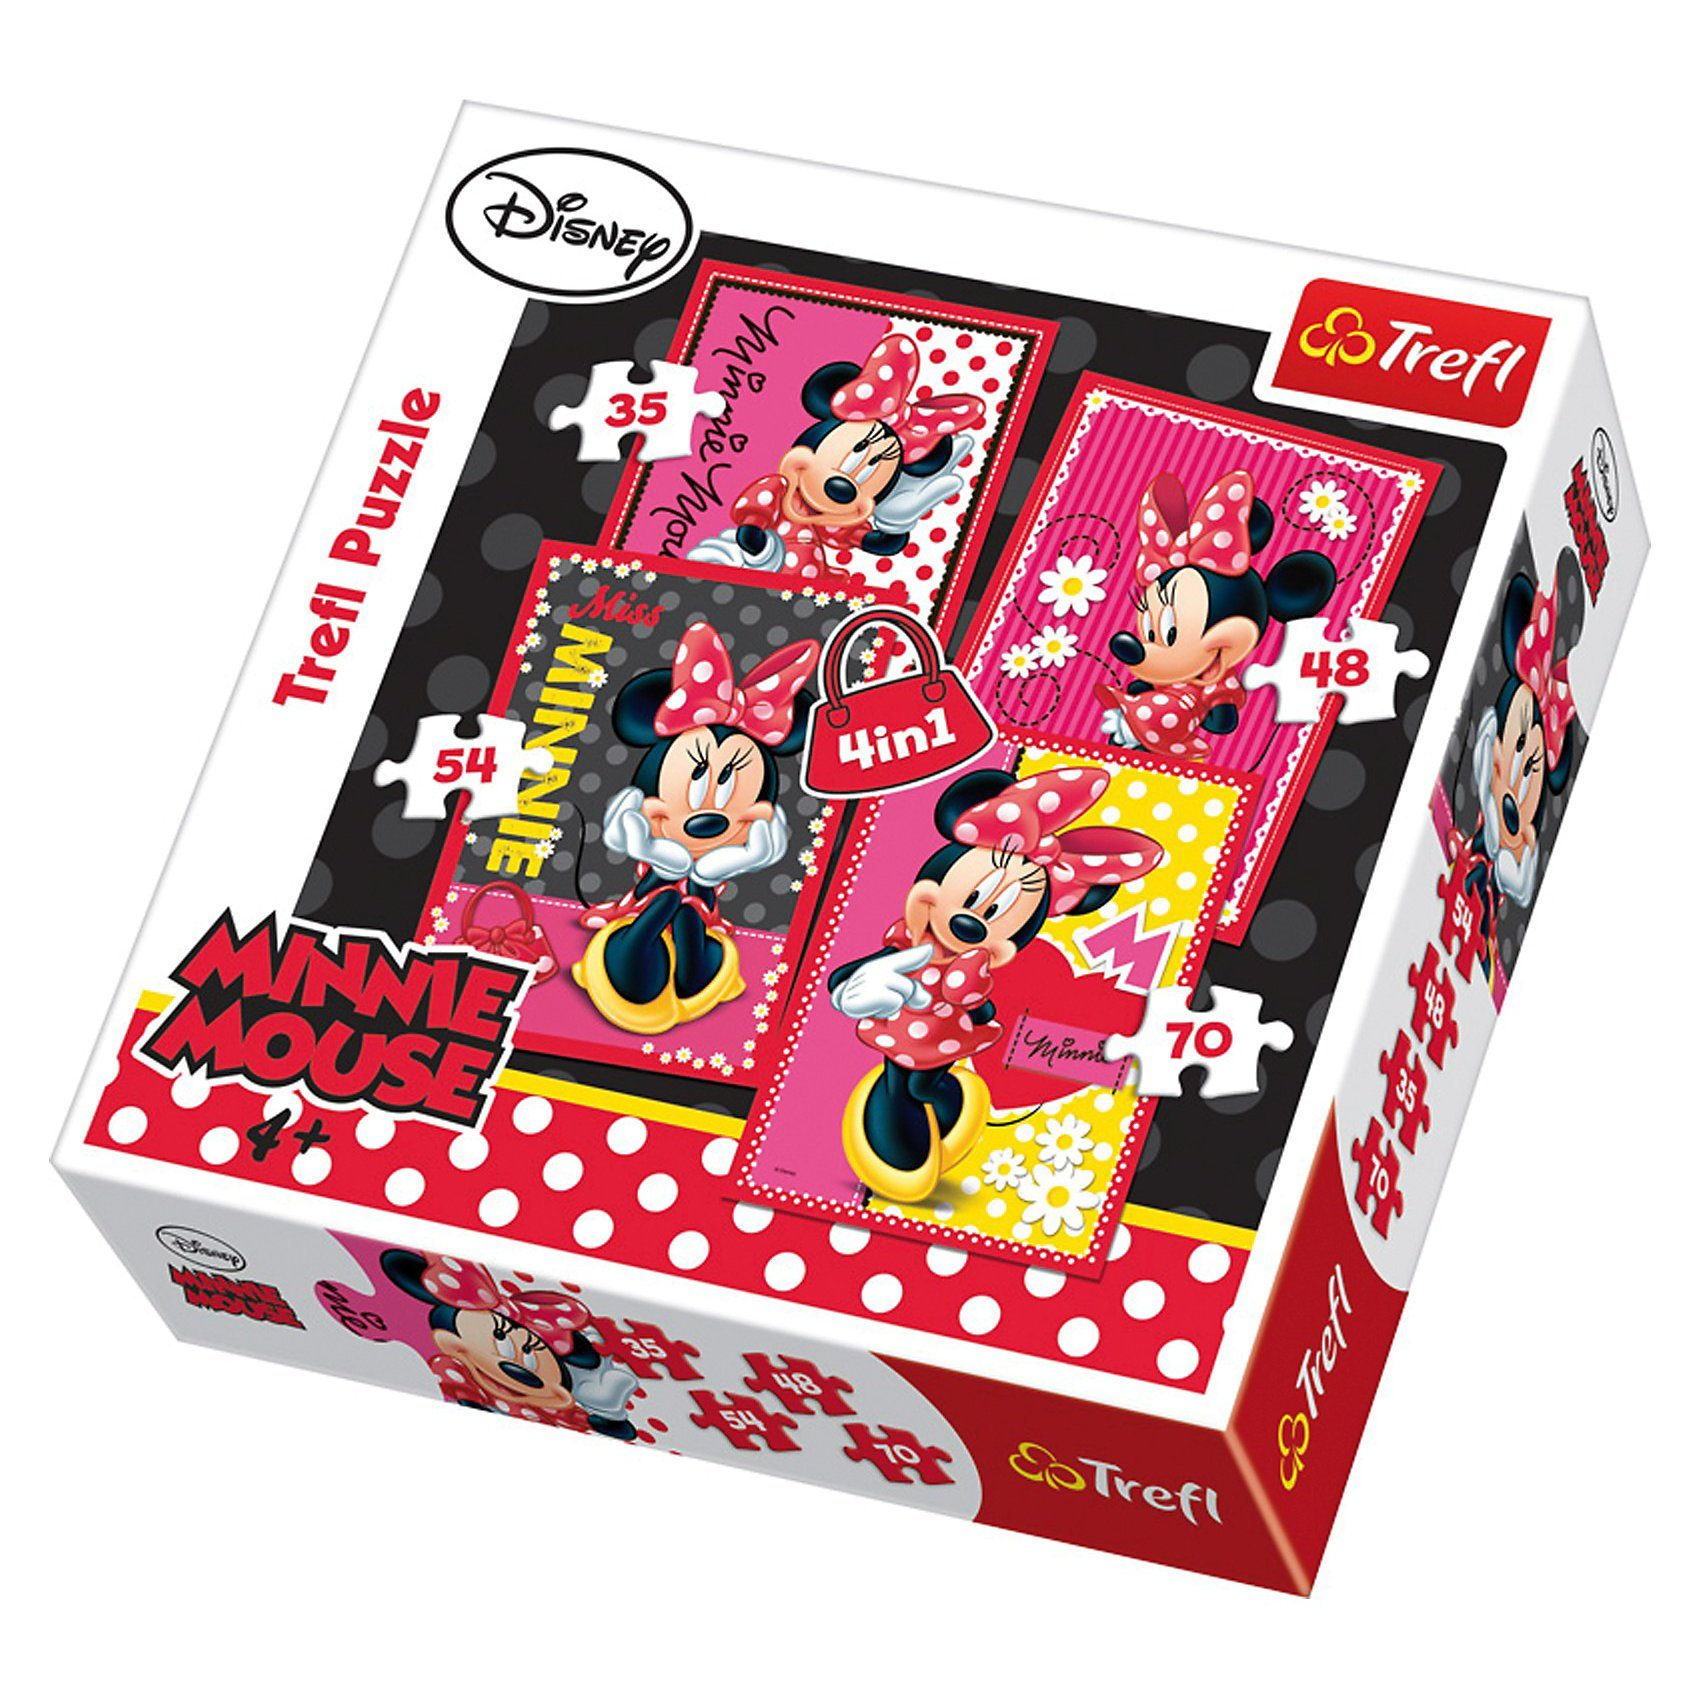 Trefl Puzzle-Set 4in1 - 35/48/54/70 Teile - Minnie Mouse